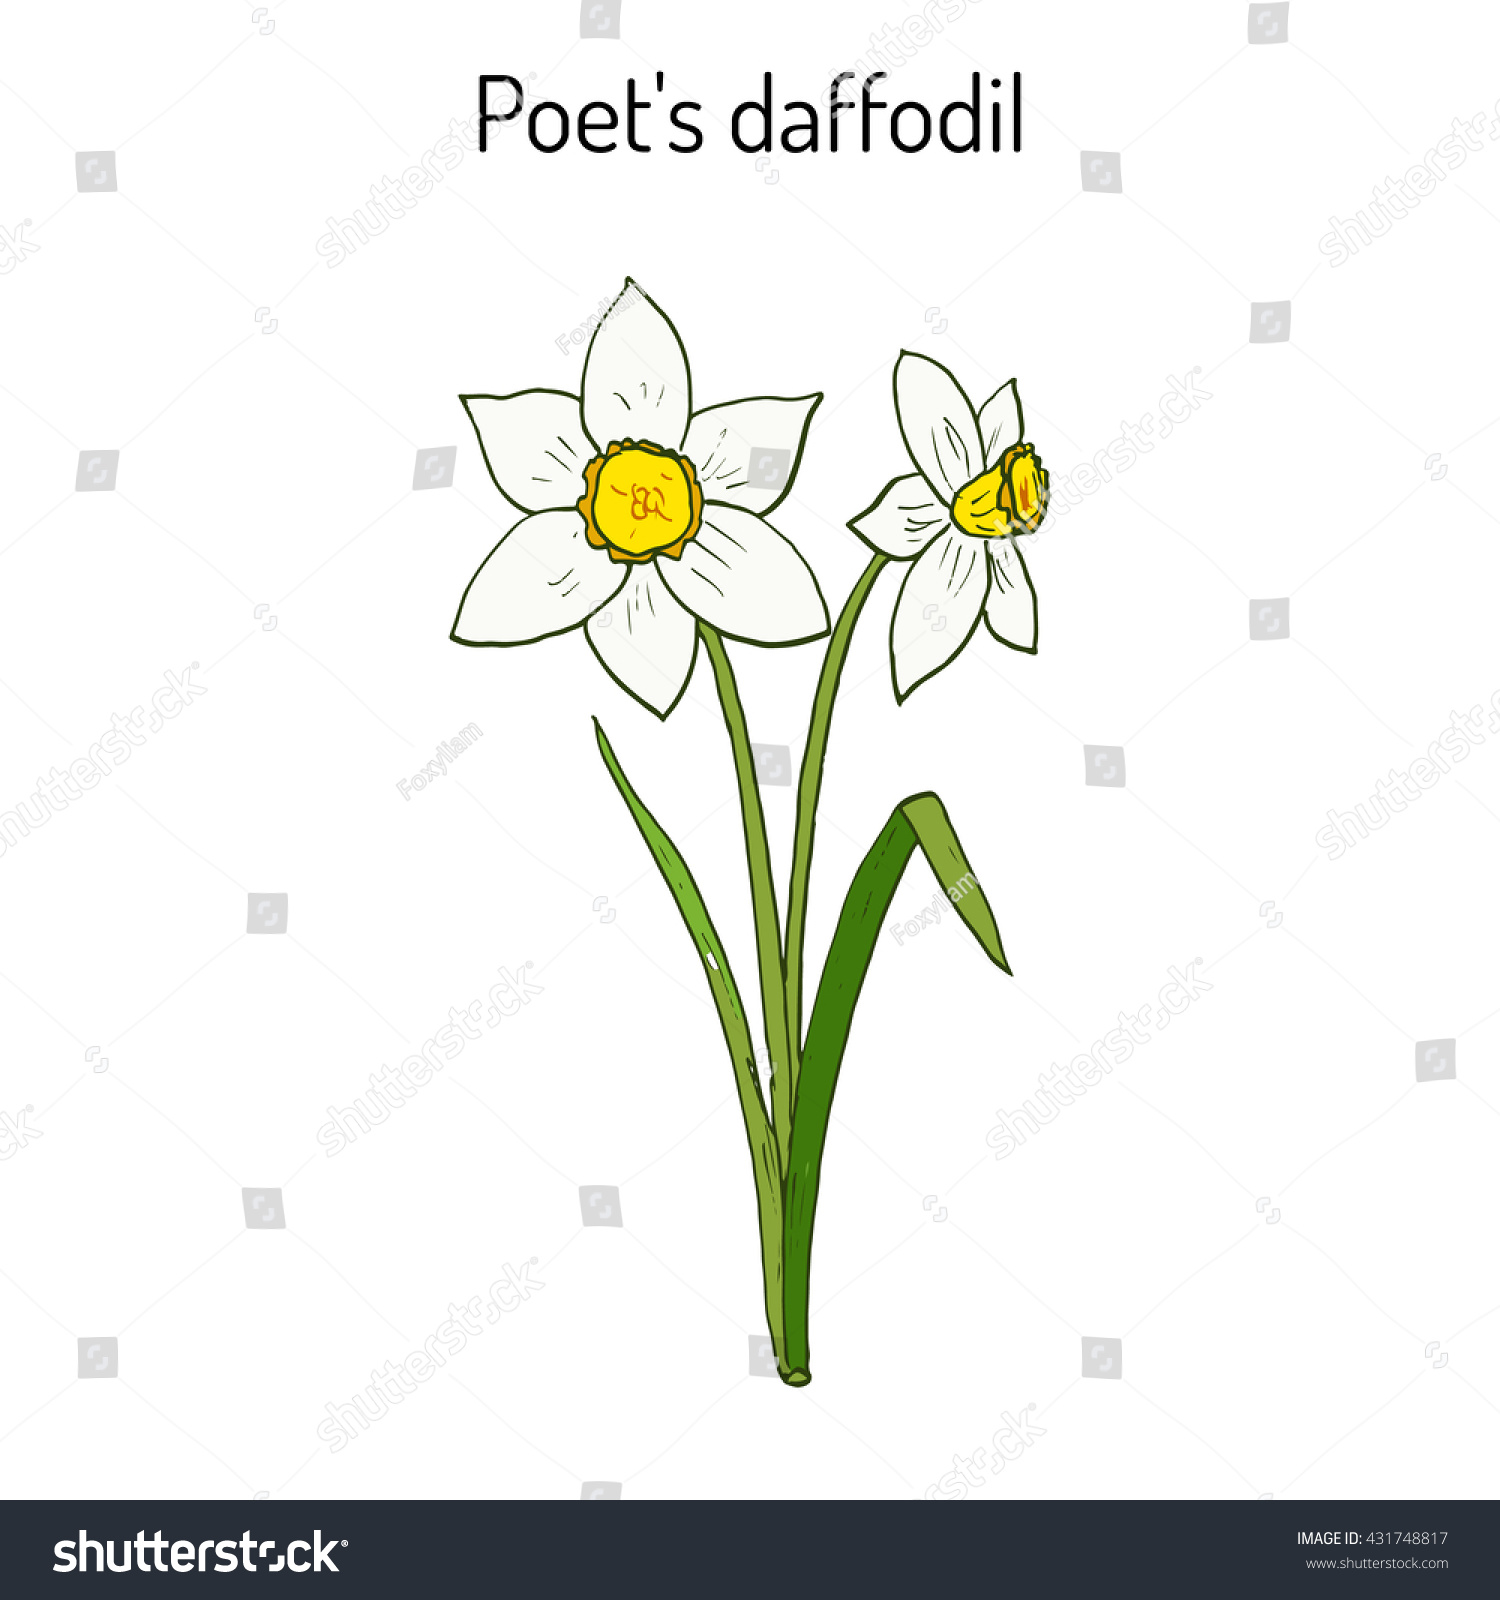 Narcissus Daffodil Daffadowndilly Jonquil Hand Drawn Stock Vector ...